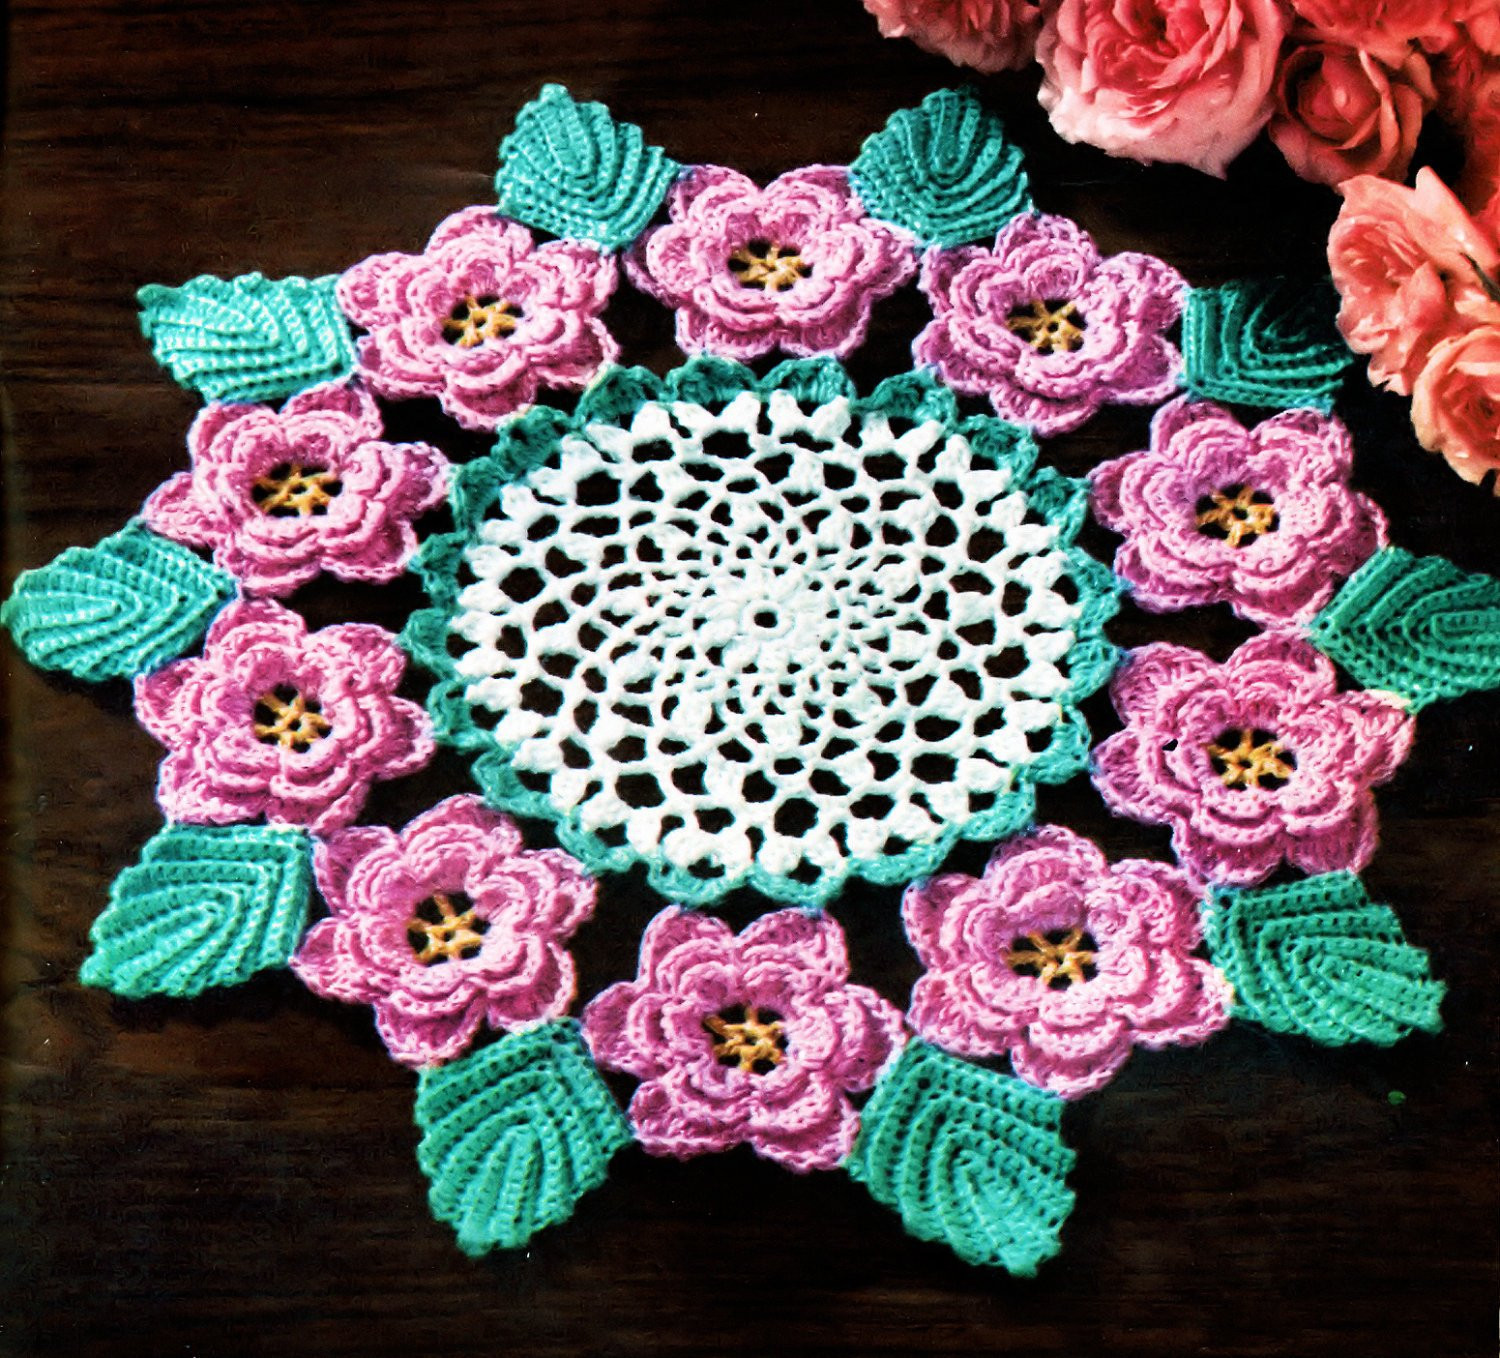 Free Crochet Doily Patterns Lovely Rose Doily Irish Crochet Pdf Pattern 1957 Of Charming 46 Pics Free Crochet Doily Patterns